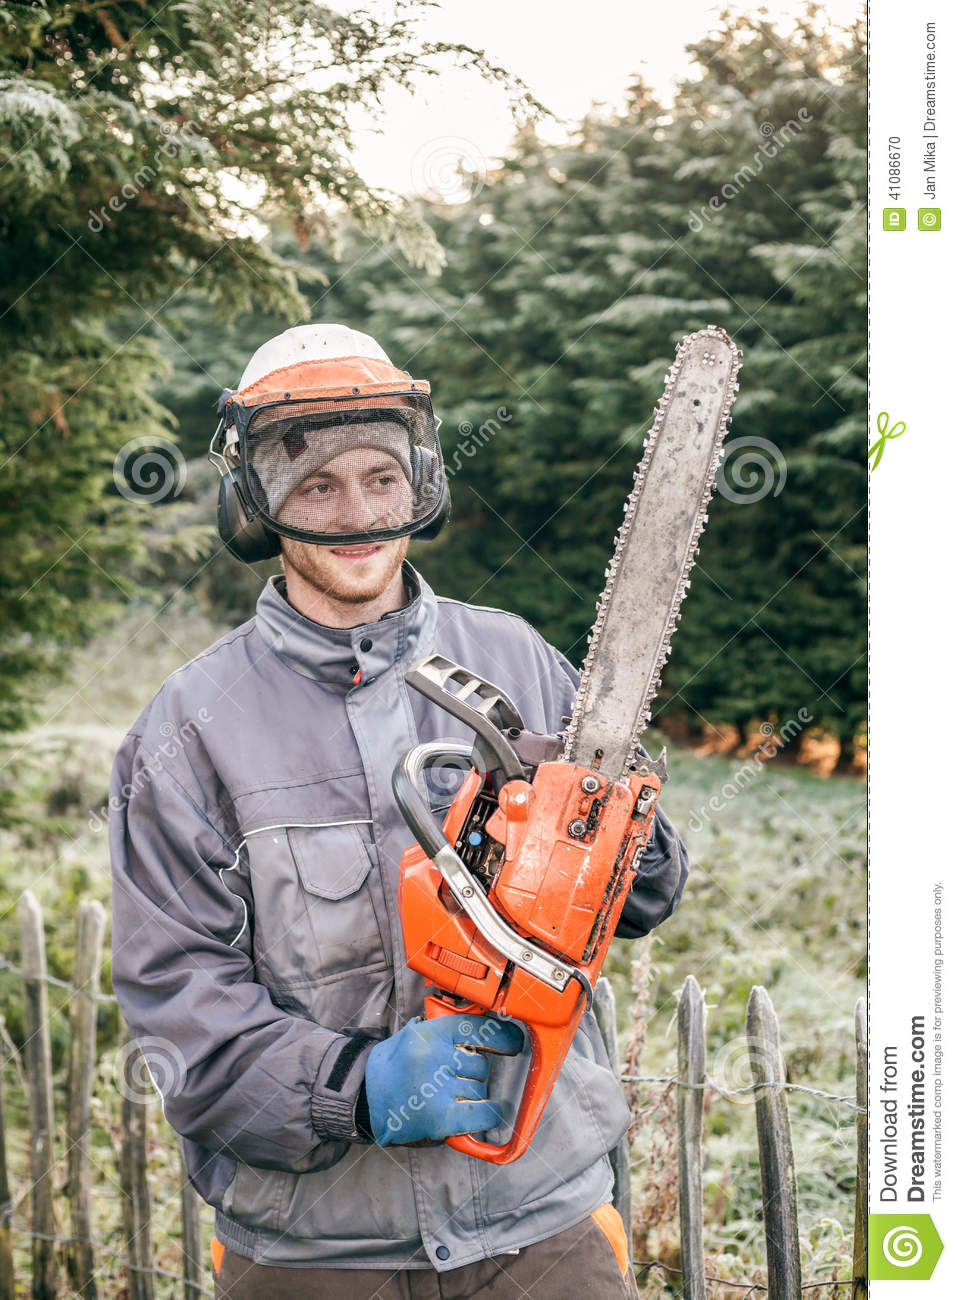 Professional Gardener With Chainsaw Stock Photo Image